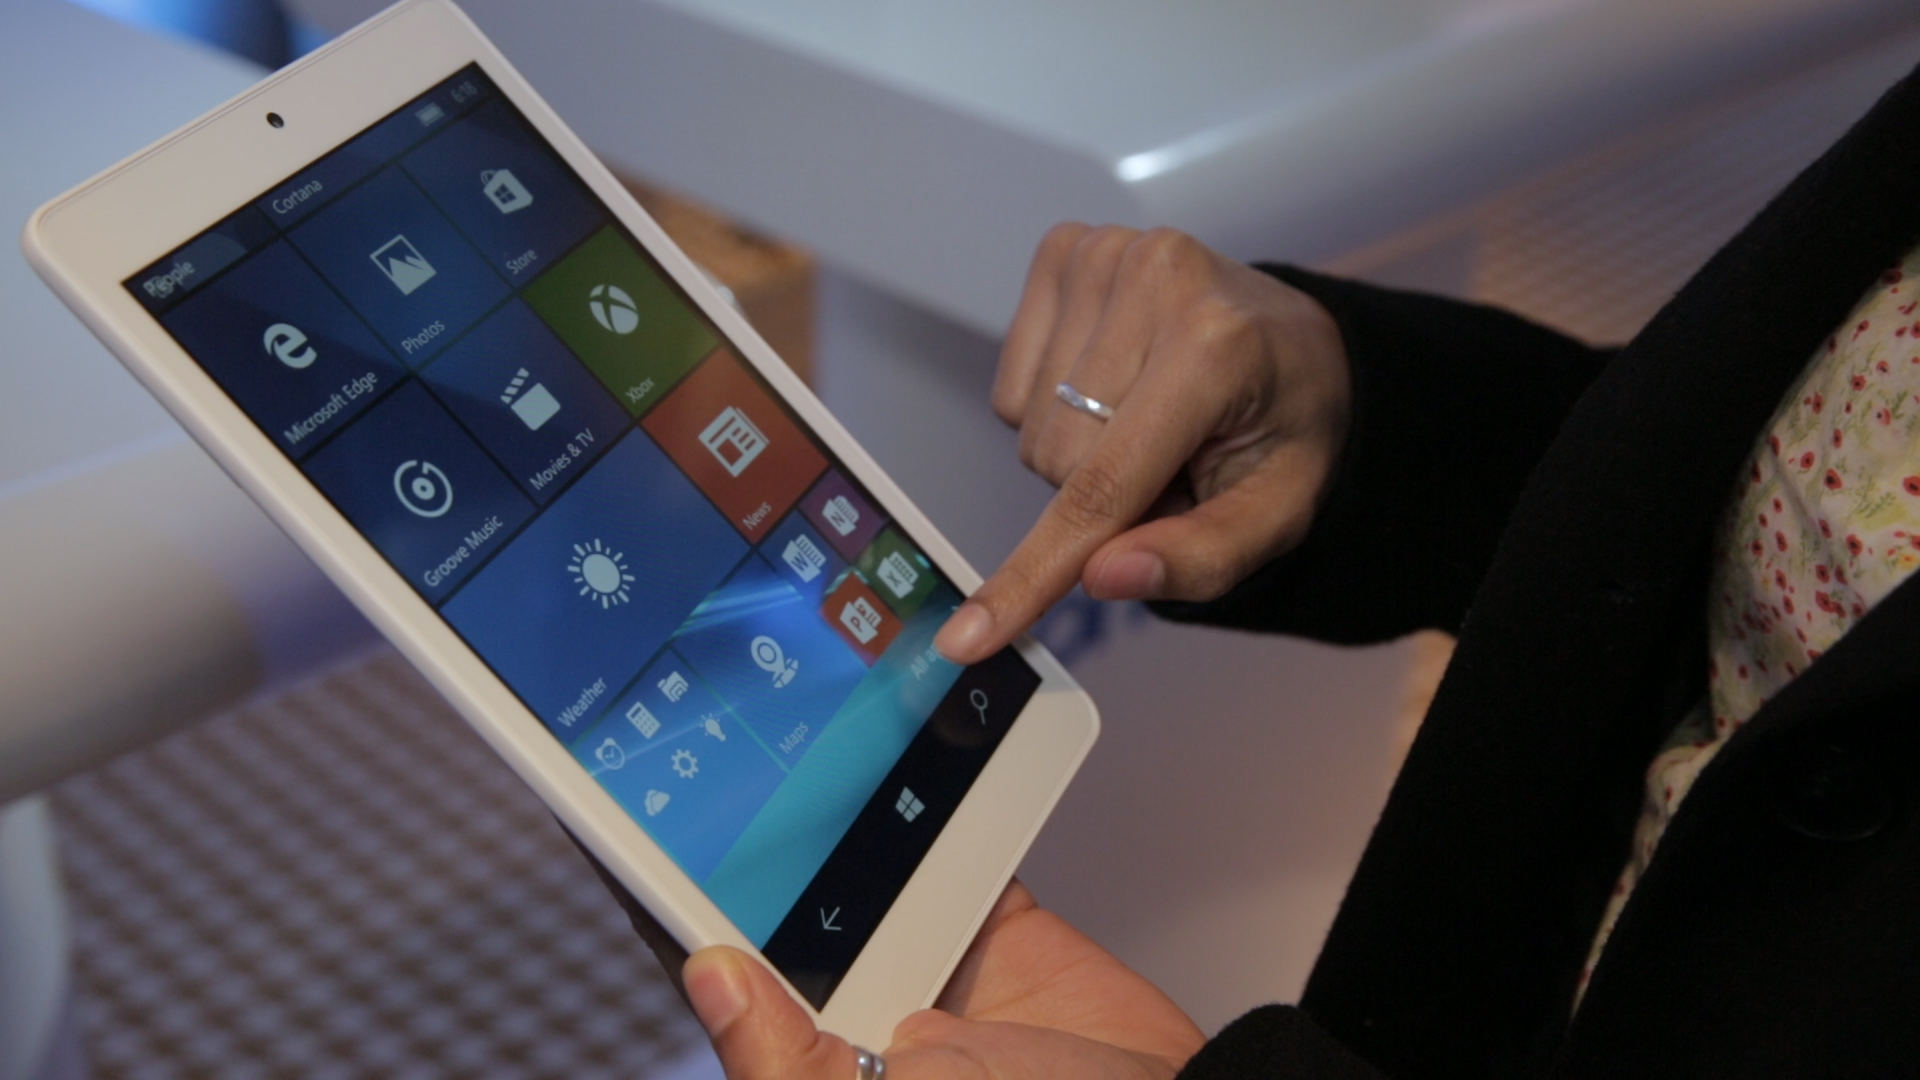 Video: An affordable Windows 10 tablet with high-speed cell capabilities